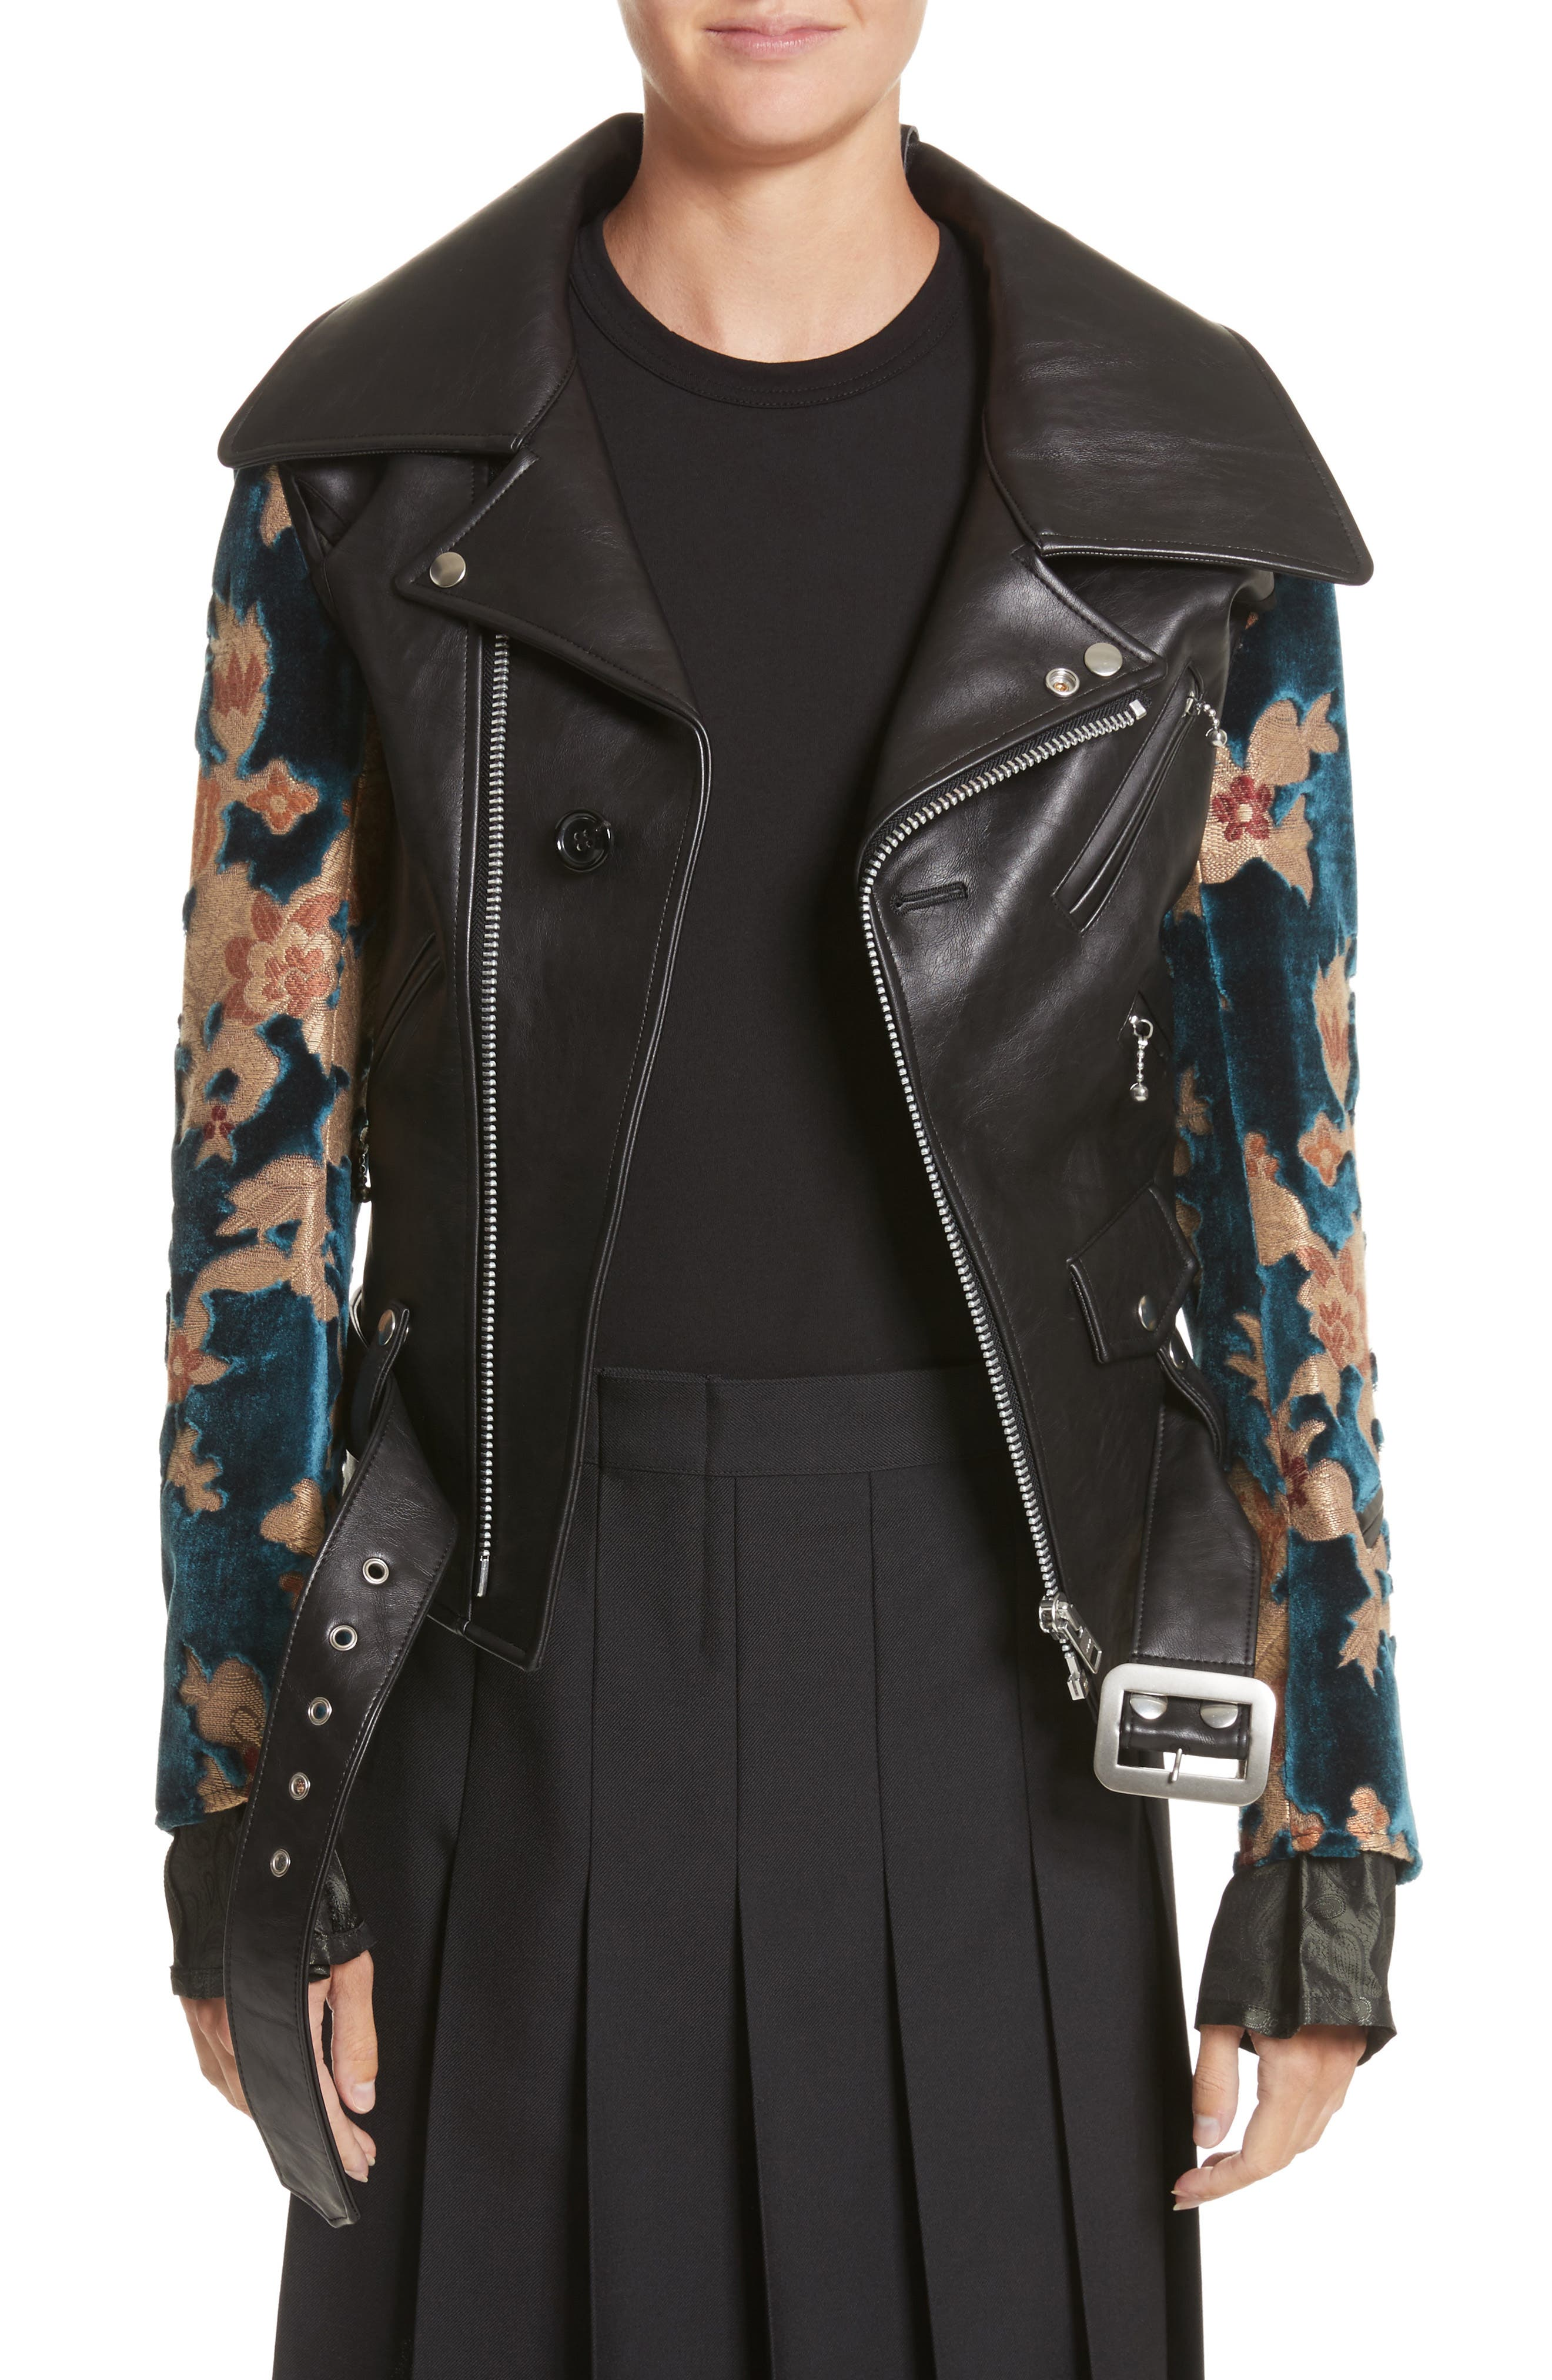 Faux Leather Moto Jacket with Floral Sleeves,                         Main,                         color, Black X Blu/Bge